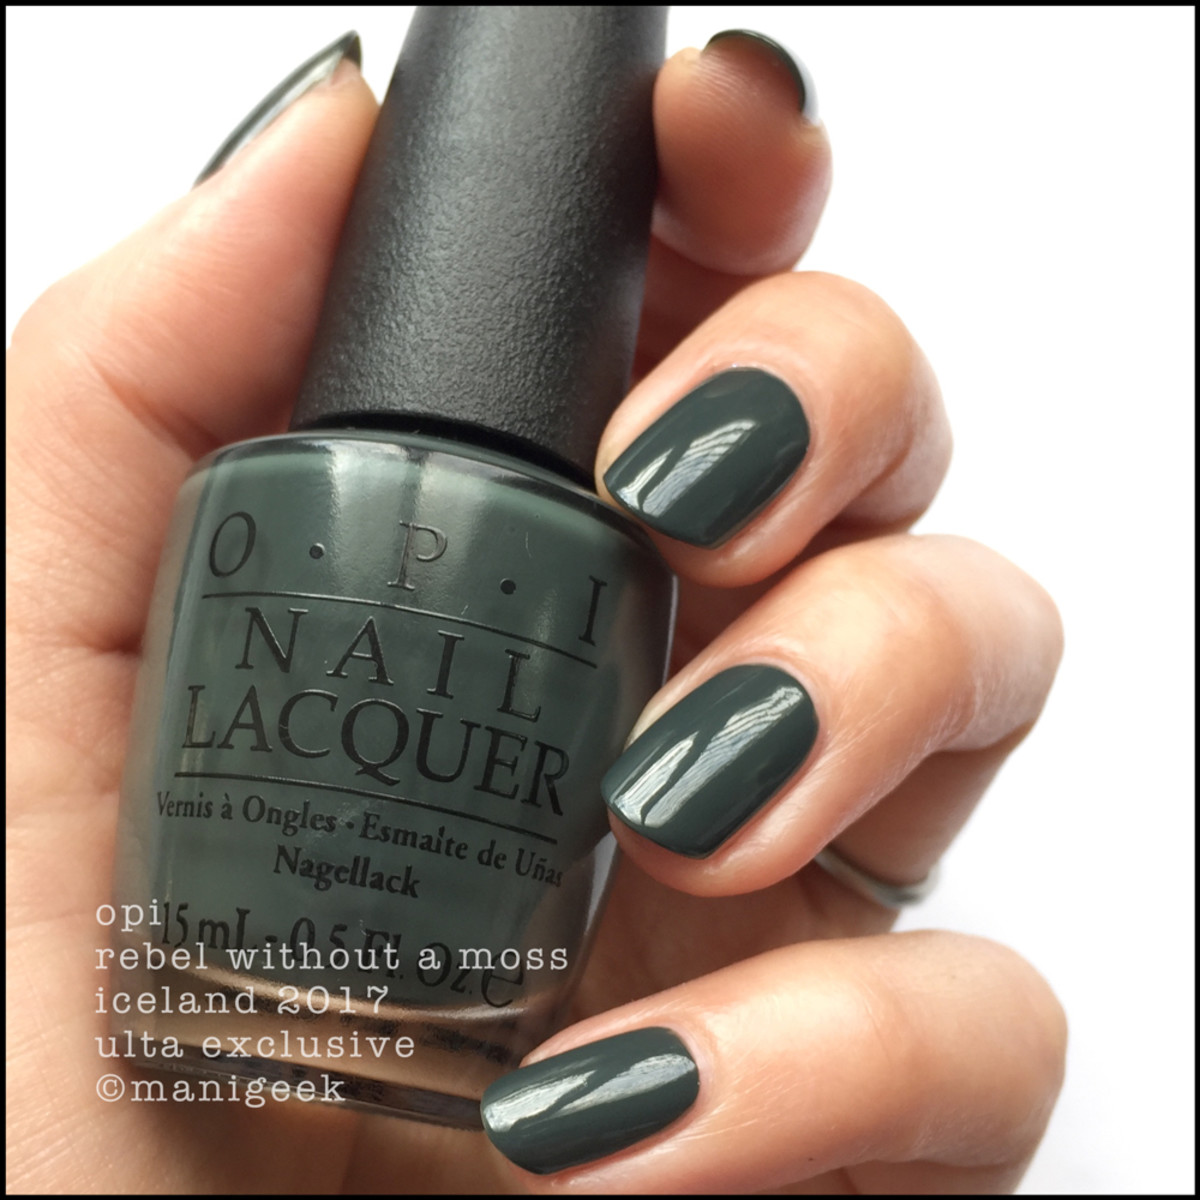 OPI Rebel Without a Moss Swatches Ulta Exclusive _ OPI Iceland Swatches Review